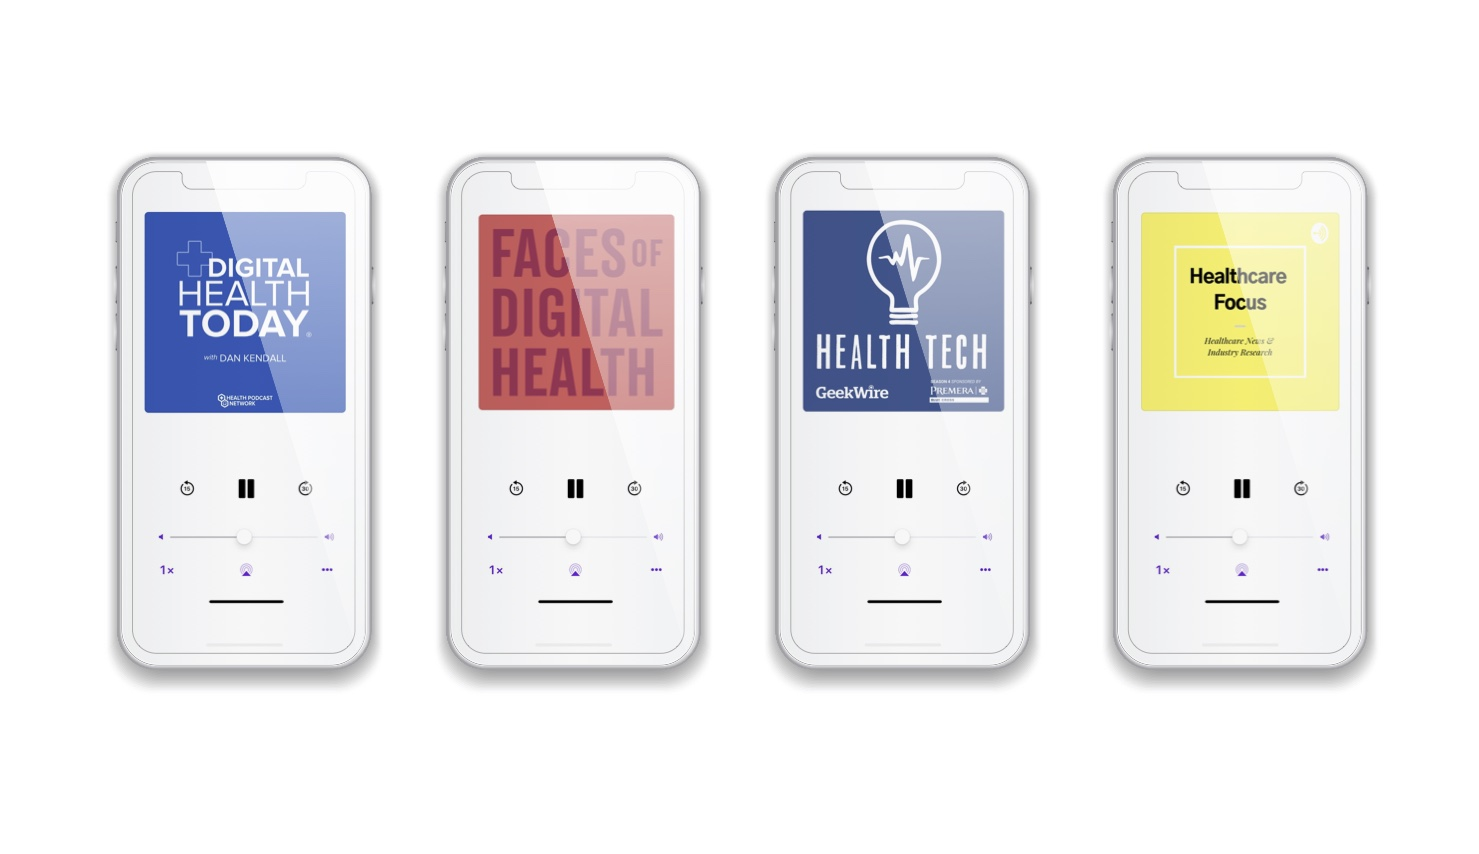 5-8_20-healthcare-podcasts_710x410_8-1-19